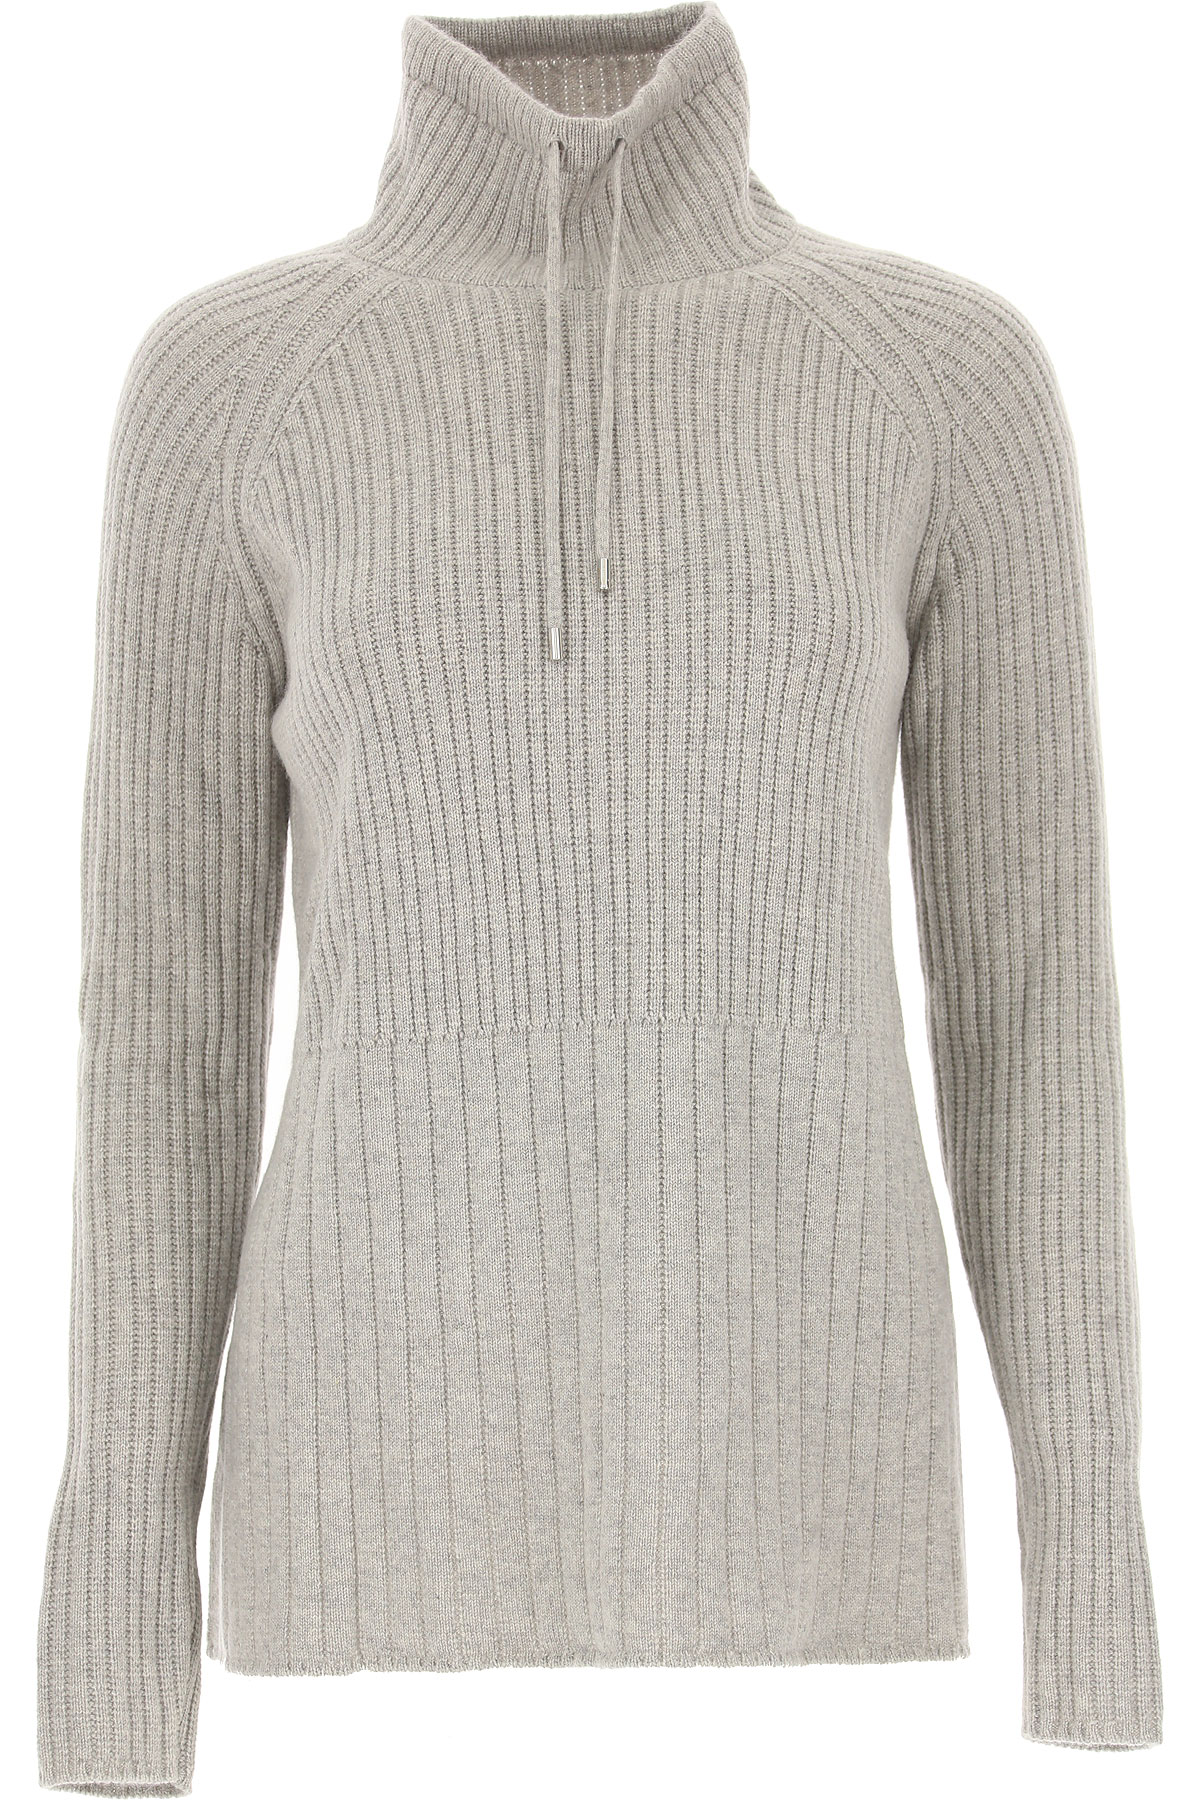 Image of Loro Piana Sweater for Women Jumper, Grey, Baby Cashmere, 2017, 4 6